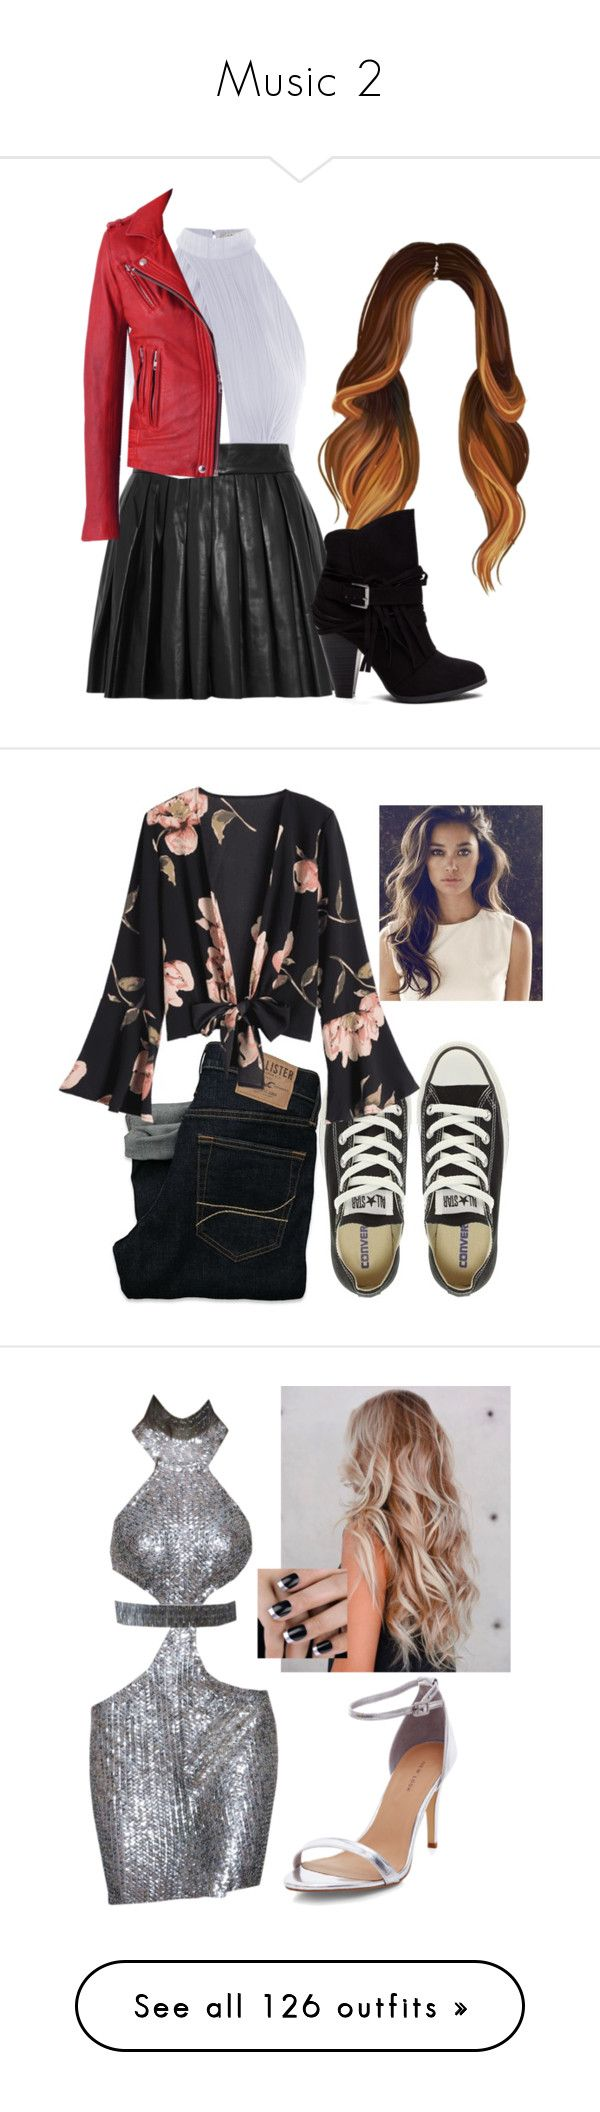 """Music 2"" by mercy-xix ❤ liked on Polyvore featuring Love, Alice + Olivia, Hollister Co., Converse, Helmut Lang, RED Valentino, Rebecca Minkoff, Topshop, MODE C. and River Island"